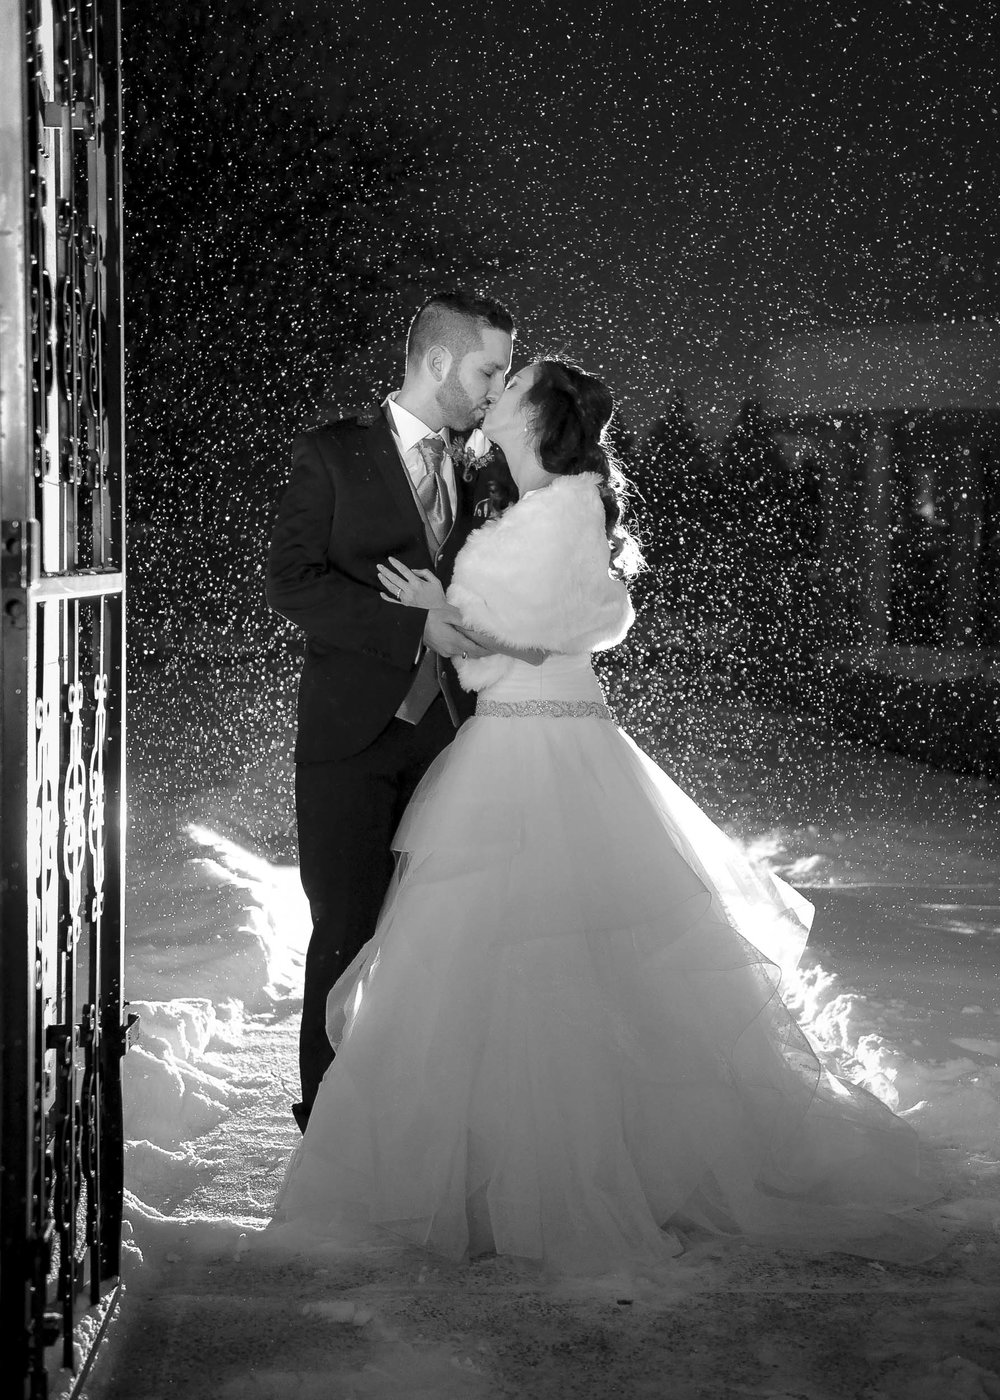 The snow was coming down more steadily and it really made for some fantastic images.  The kiss coupled with the snow, and the black and white effect creates a very romantic feel.